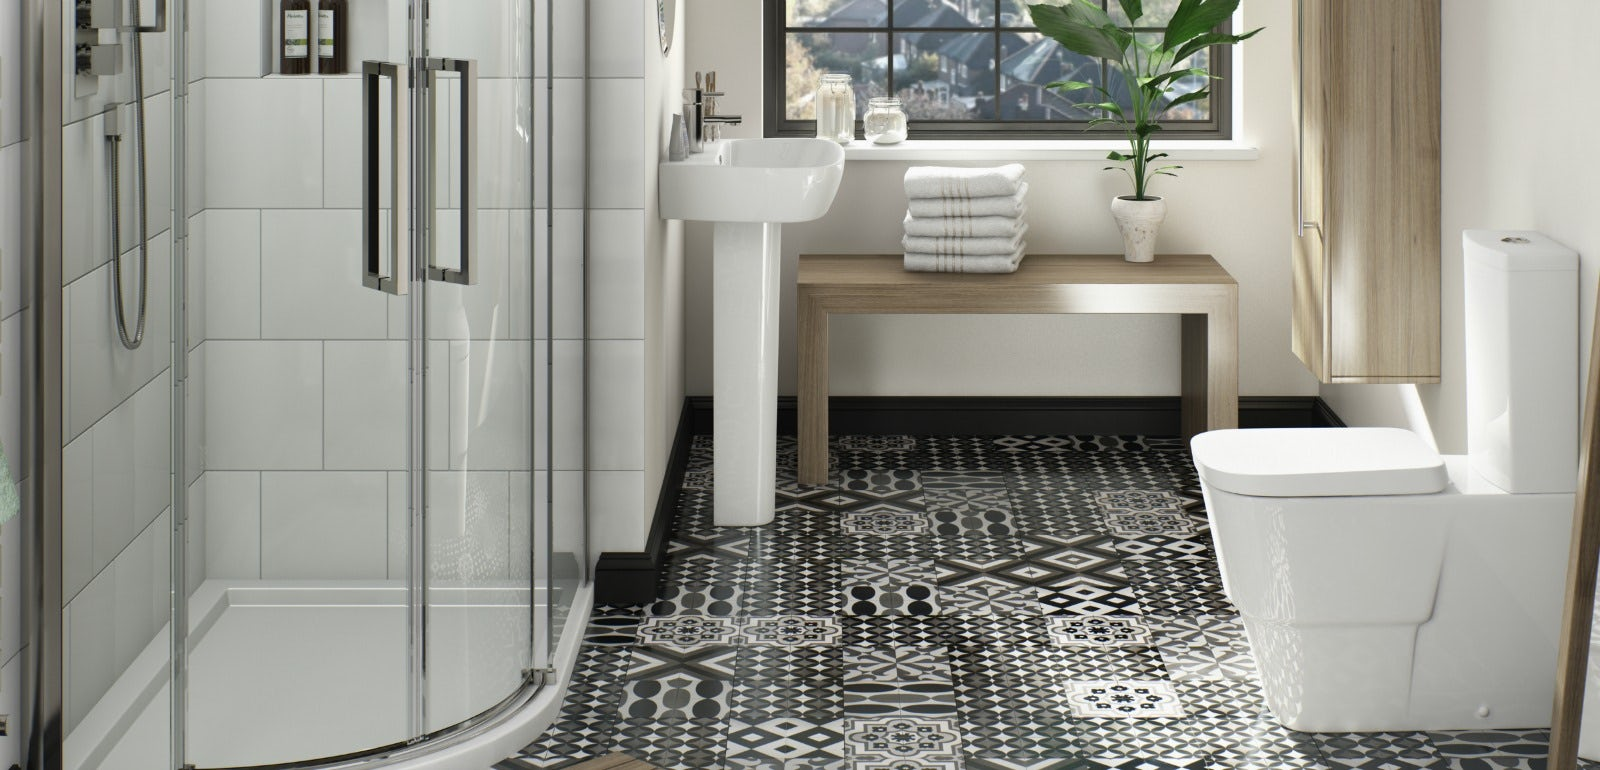 Get the most out of your ensuite Ensuite tile ideas pictures